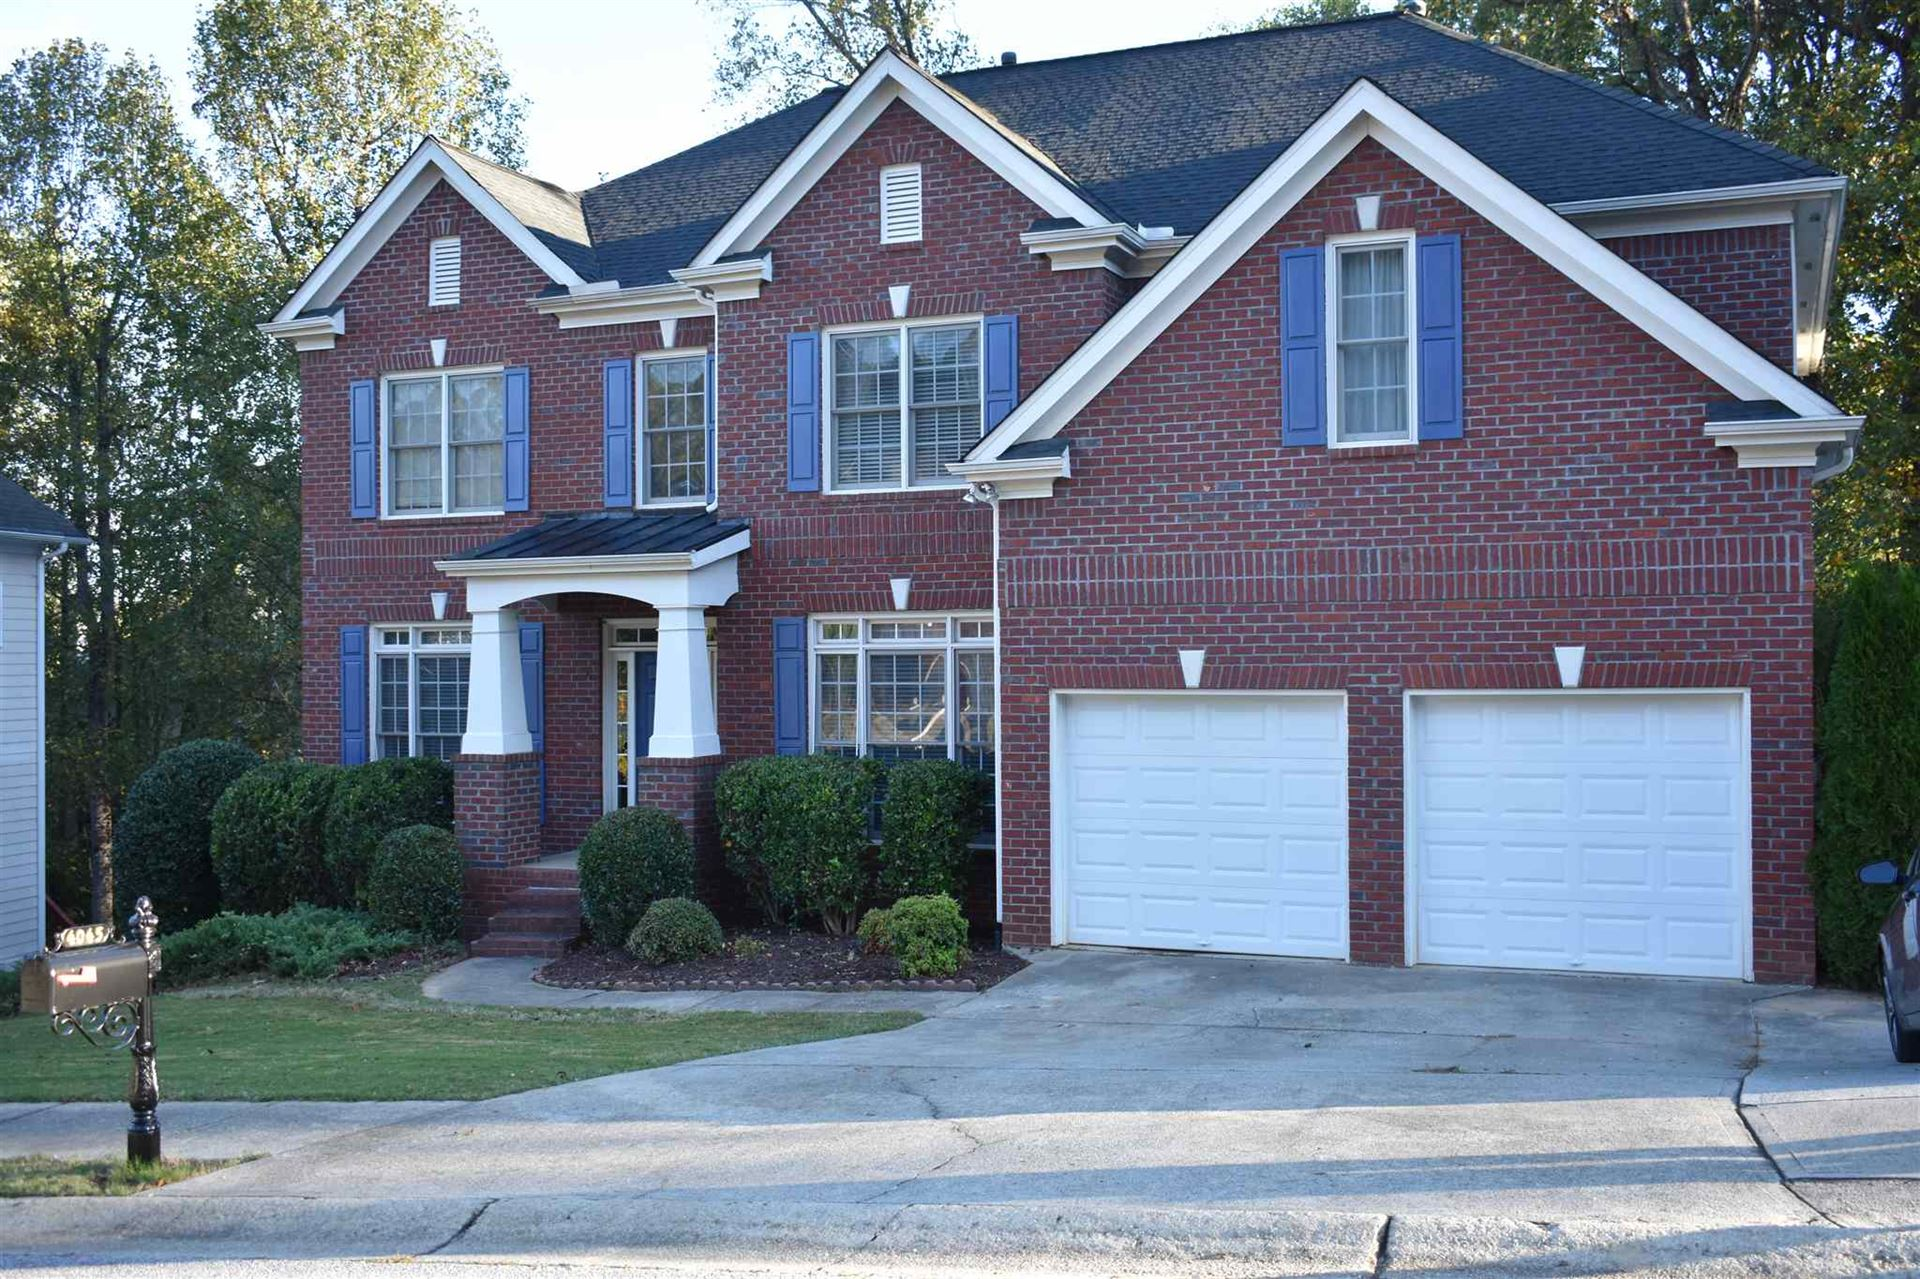 4045 Riverglen Cir, Suwanee, GA 30024 - MLS#: 8882453